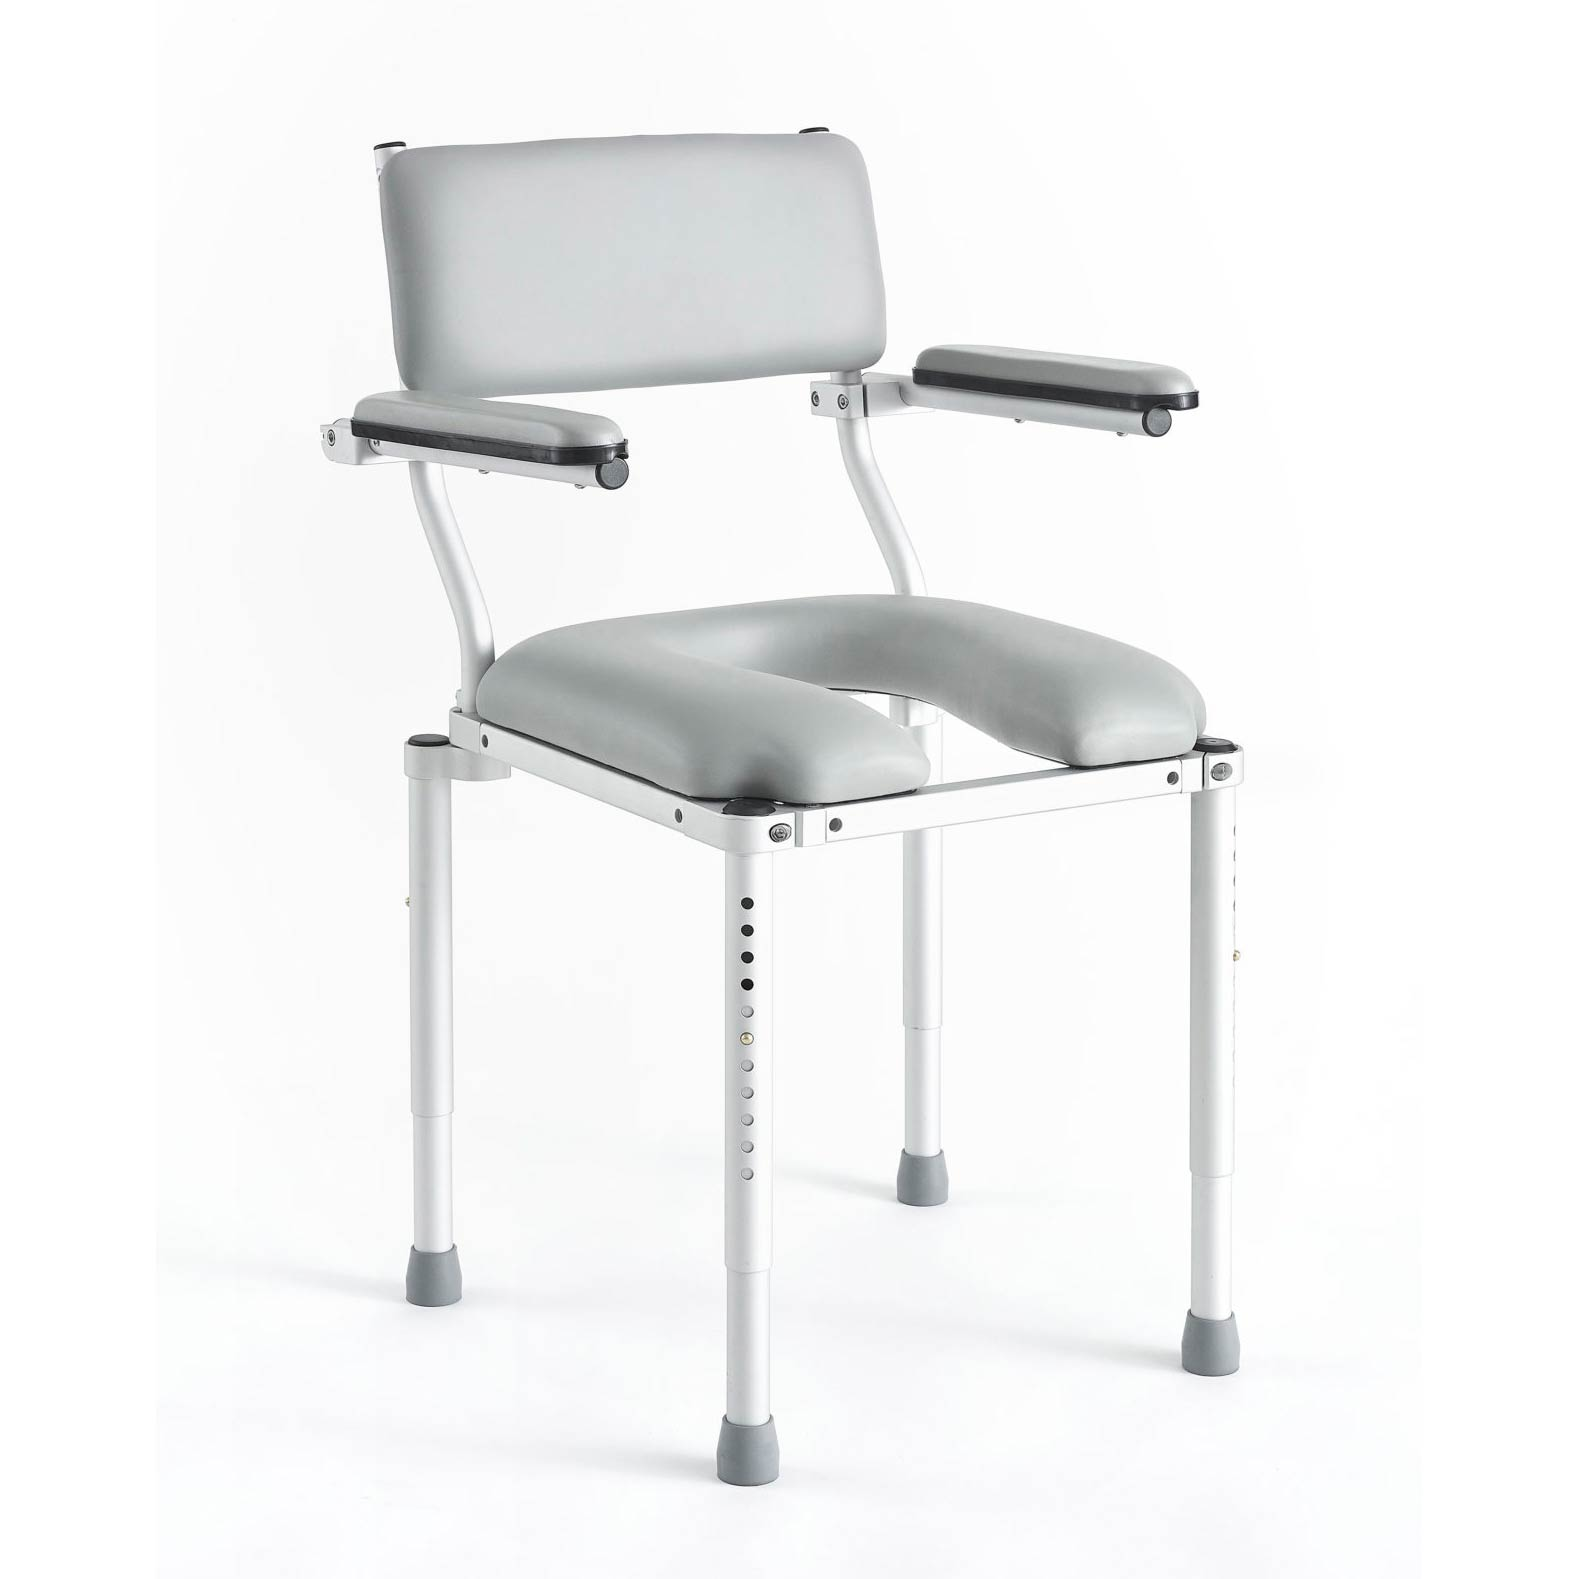 Nuprodx Multichair 3000 Tub And Toilet Chair   Medicaleshop